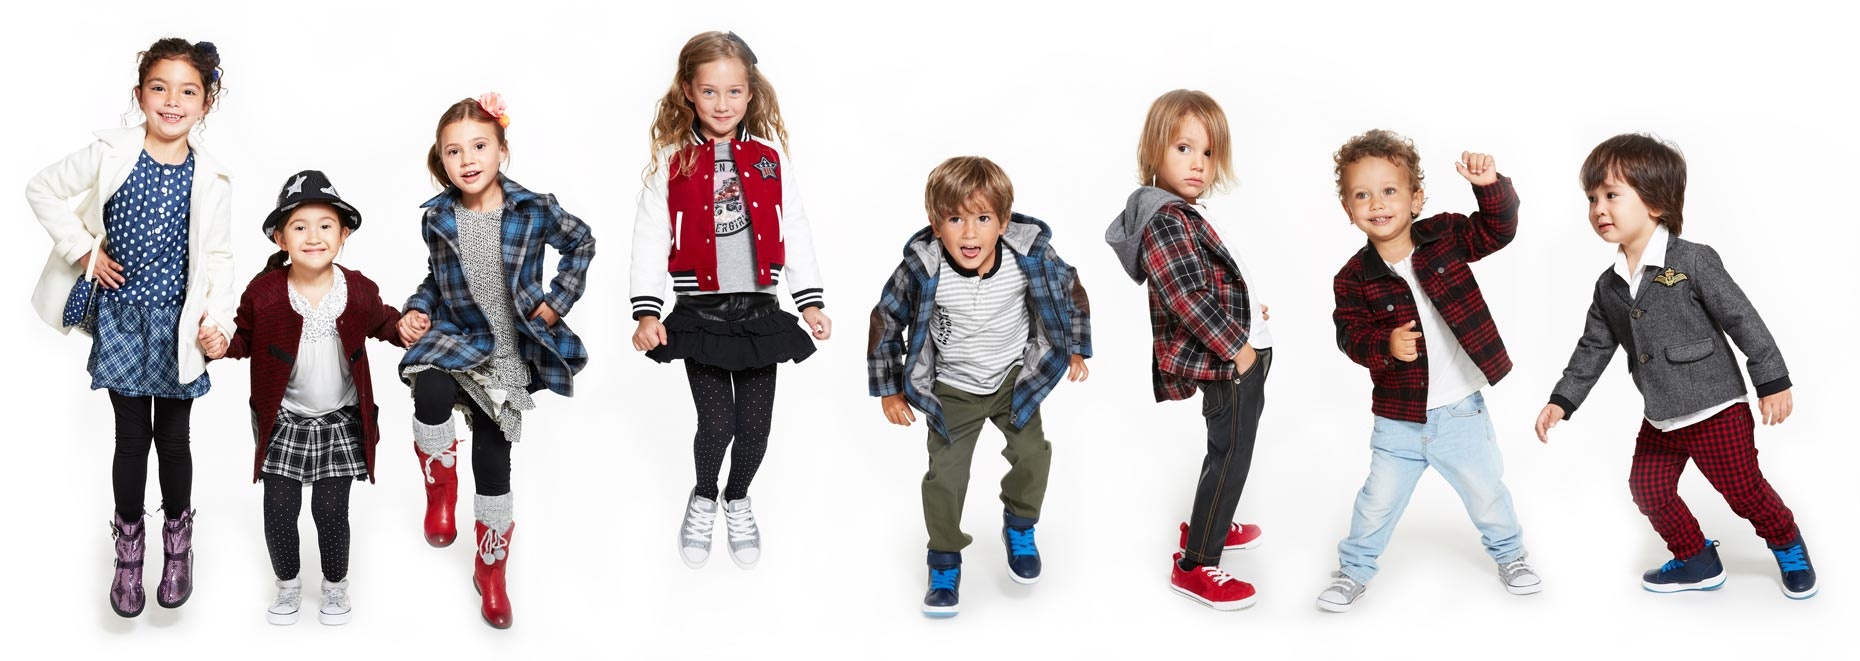 Karman Angel Kids Fashion Campaign.jpg